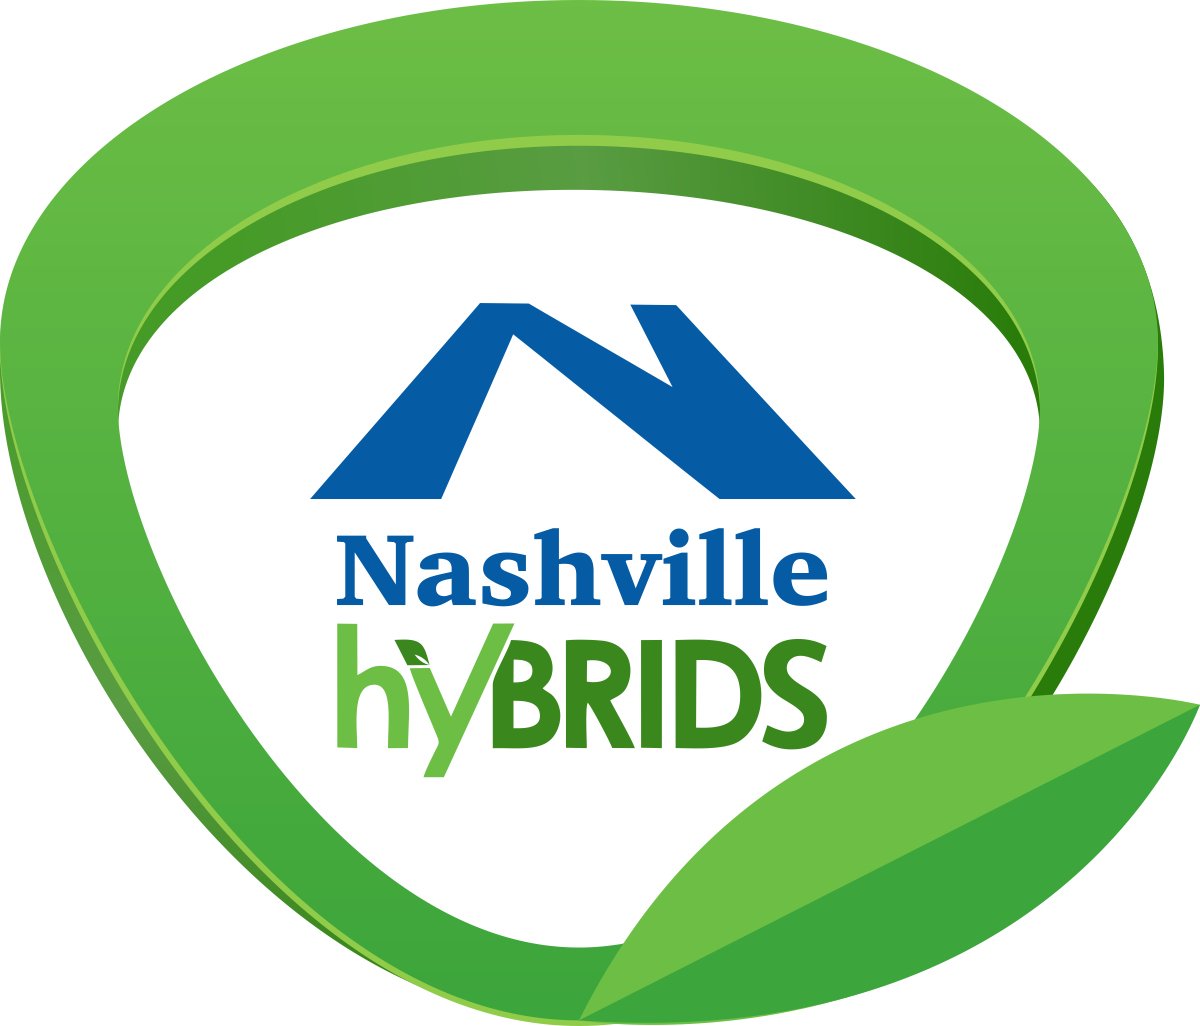 Nashville Hybrids Llc Madison Tn Read Consumer Reviews Browse Used And New Cars For Sale